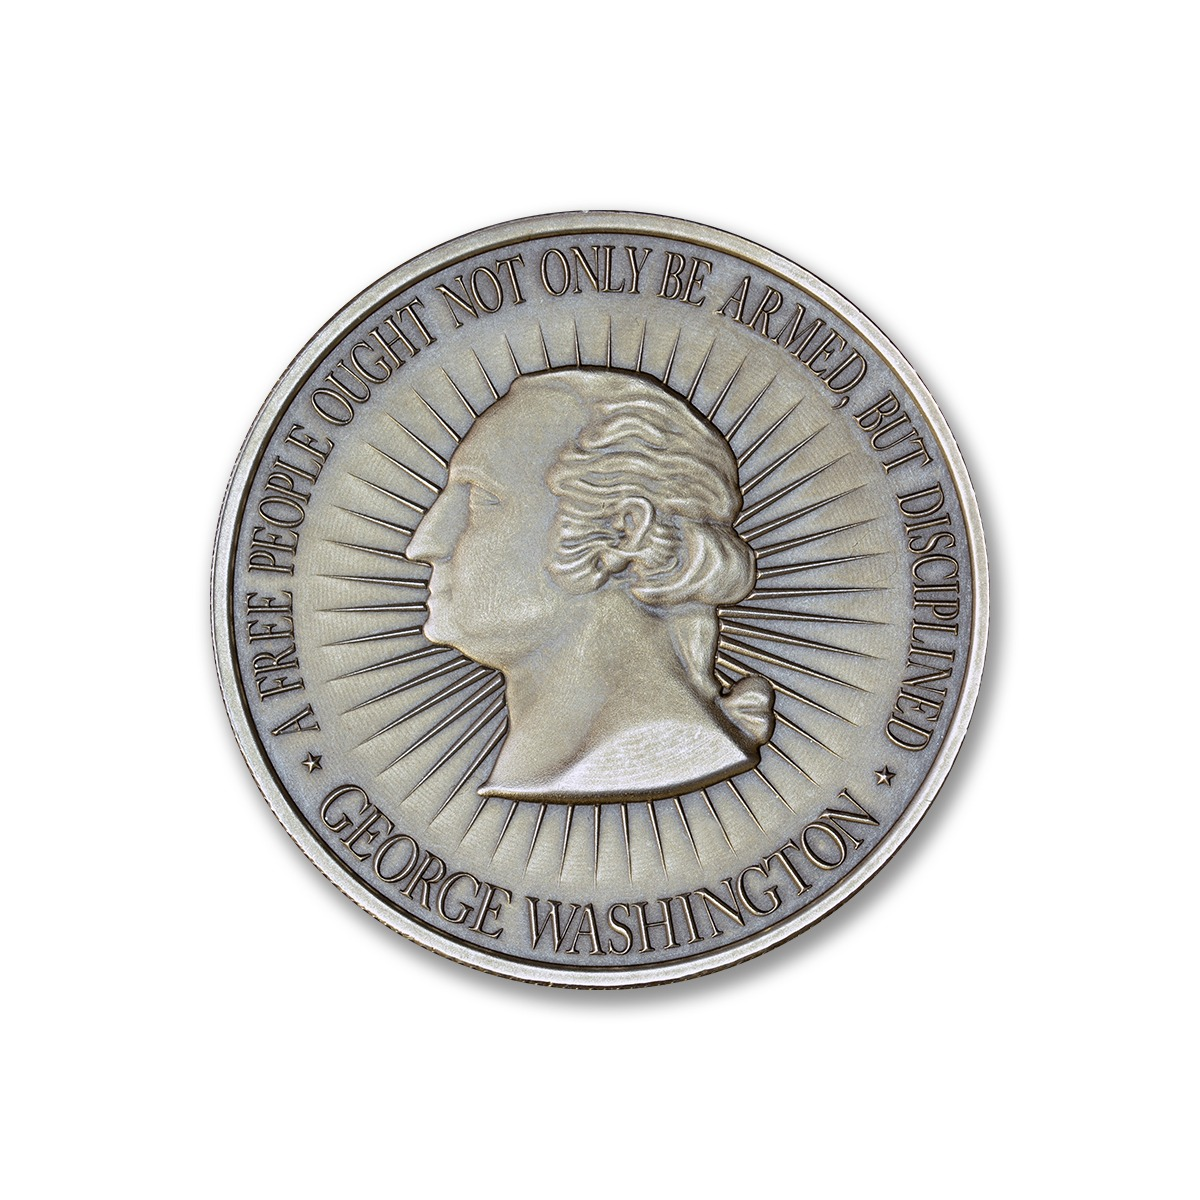 Washington Bust / Bill of Rights 2A - 1 ozt. 39mm .999 Silver Art Medal (Antique Finish)